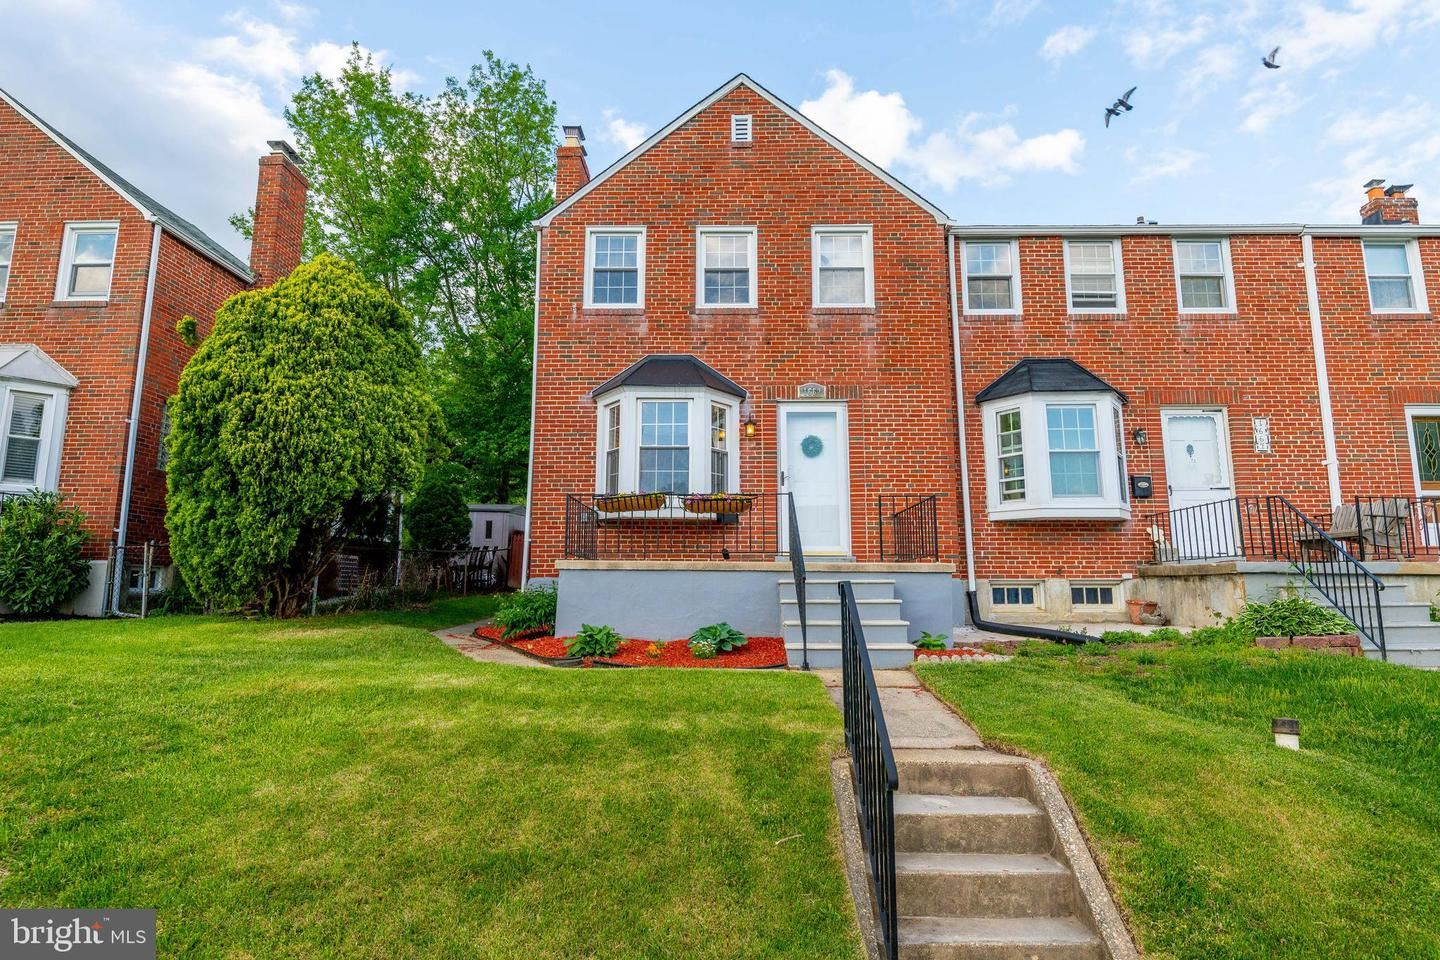 1662 THETFORD RD, Baltimore, MD 21286 - MLS#: MDBC528028